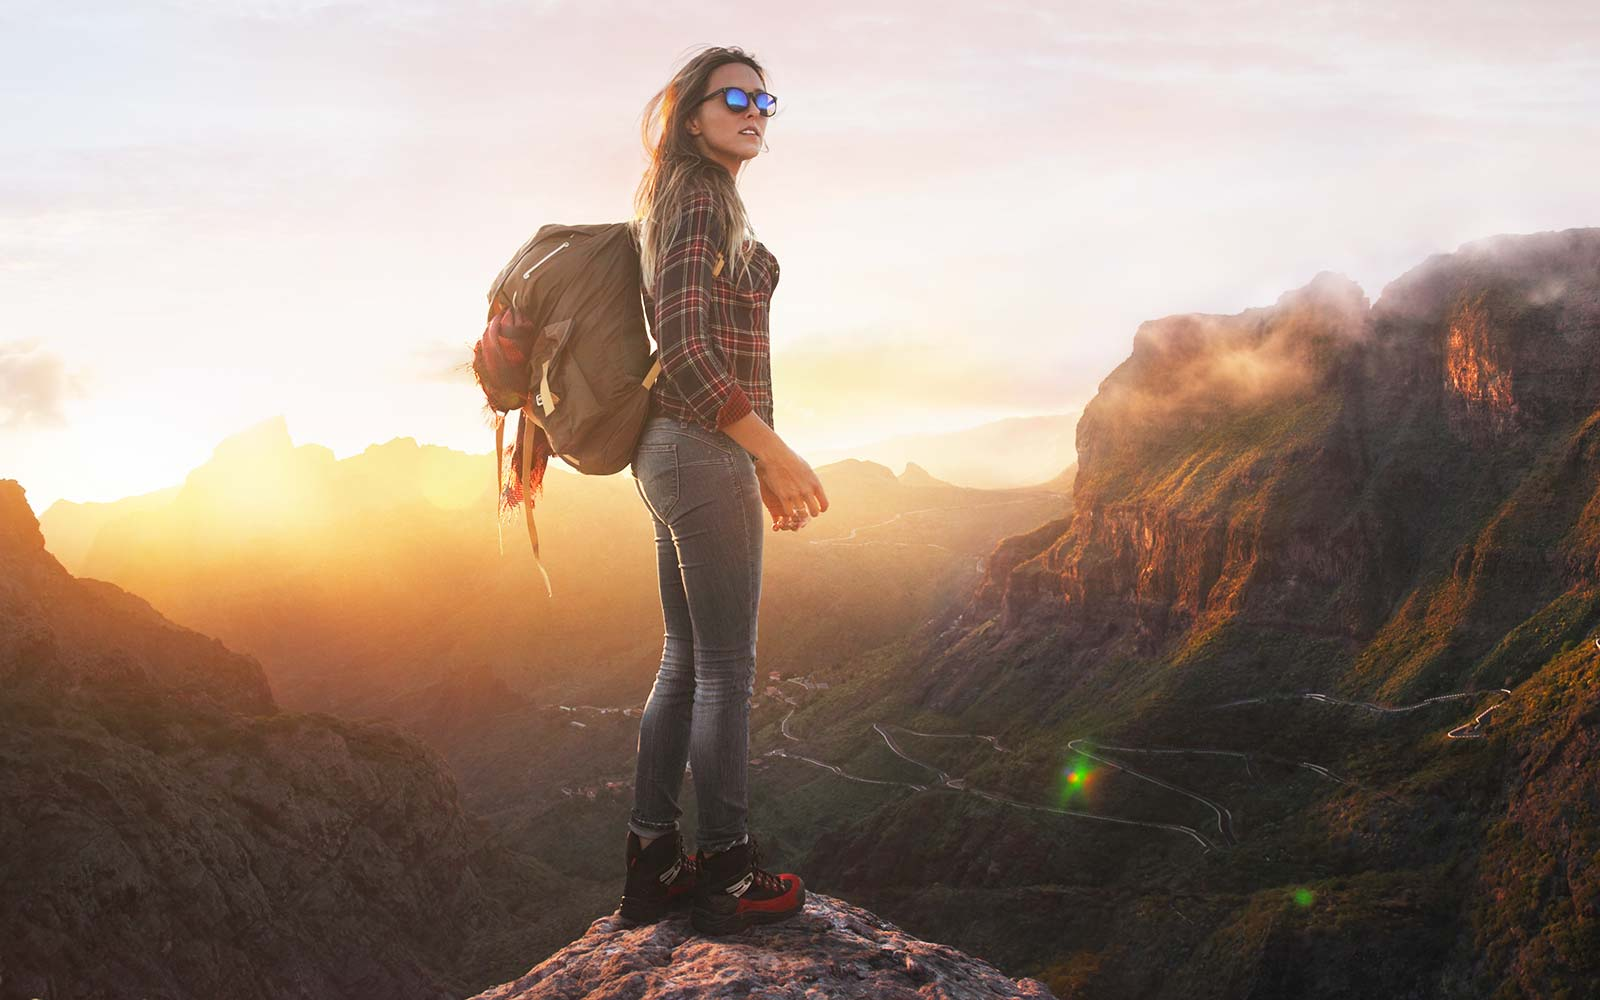 Female rock sunset hike mountain women adventure outdoor